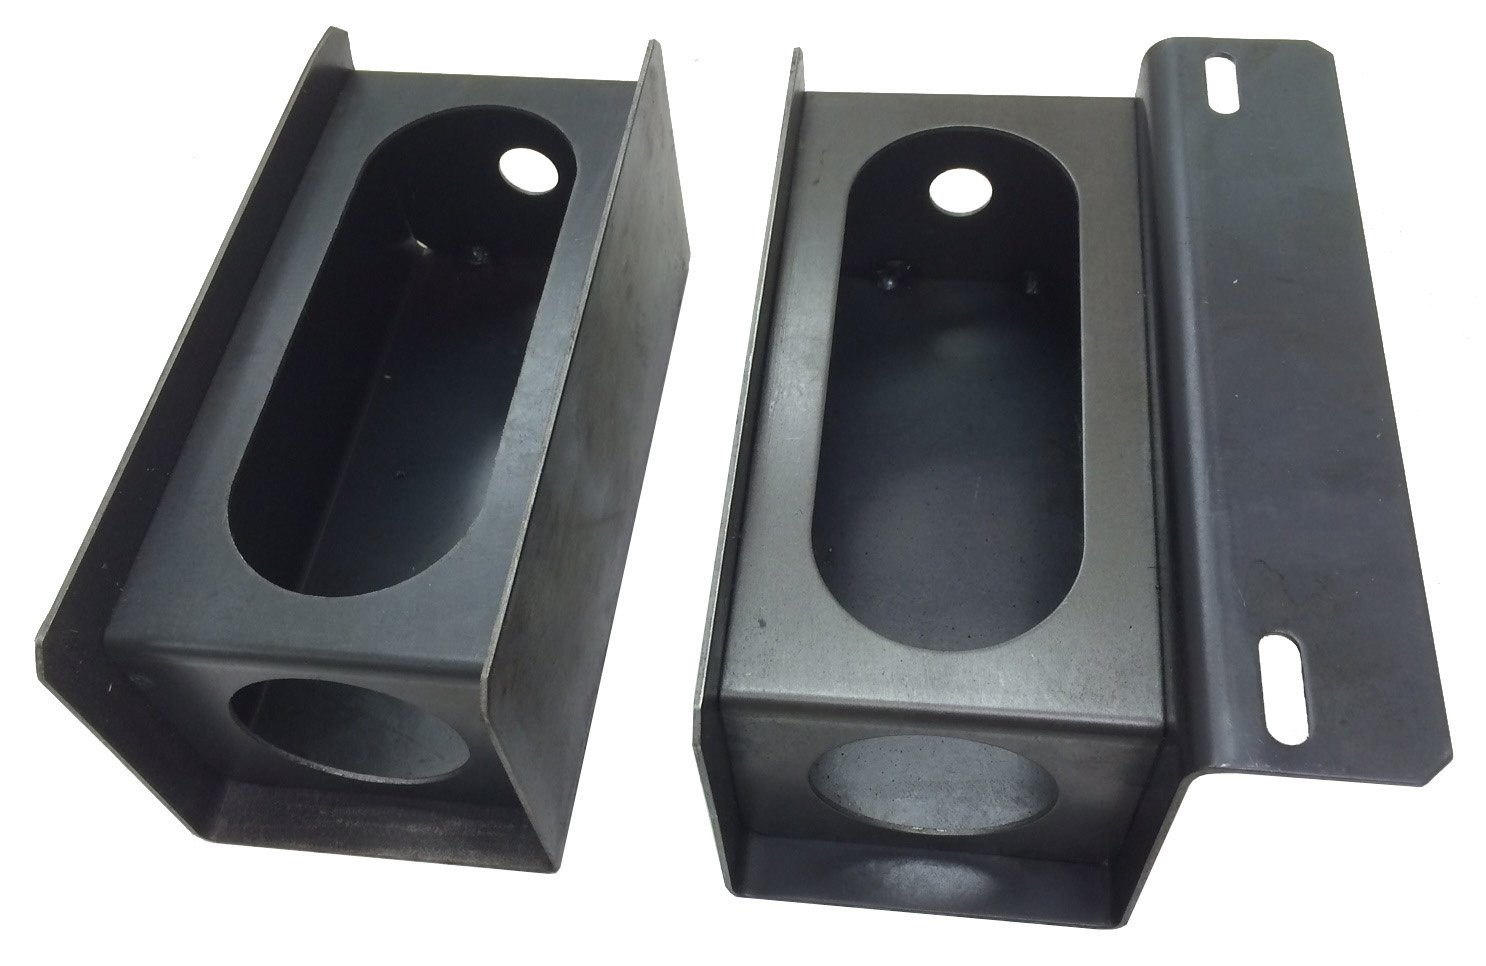 Set of Steel Trailer 6'' Oval & 2'' Round Side Light Mount Box W/License Plate Rack - 24013/24014 by LIBRA